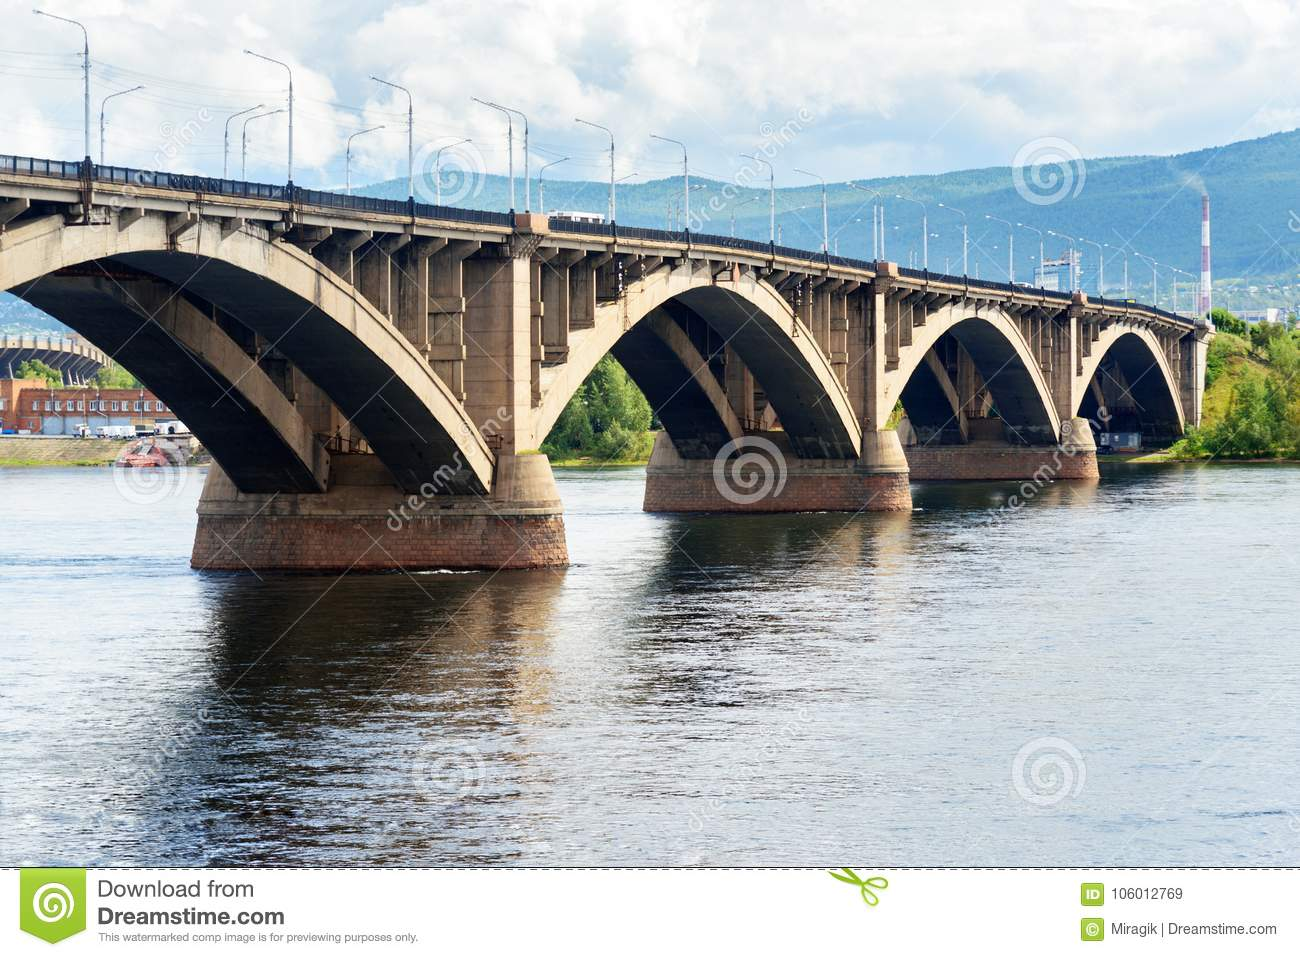 The bridge over Kacha in Krasnoyarsk will be open in September 39